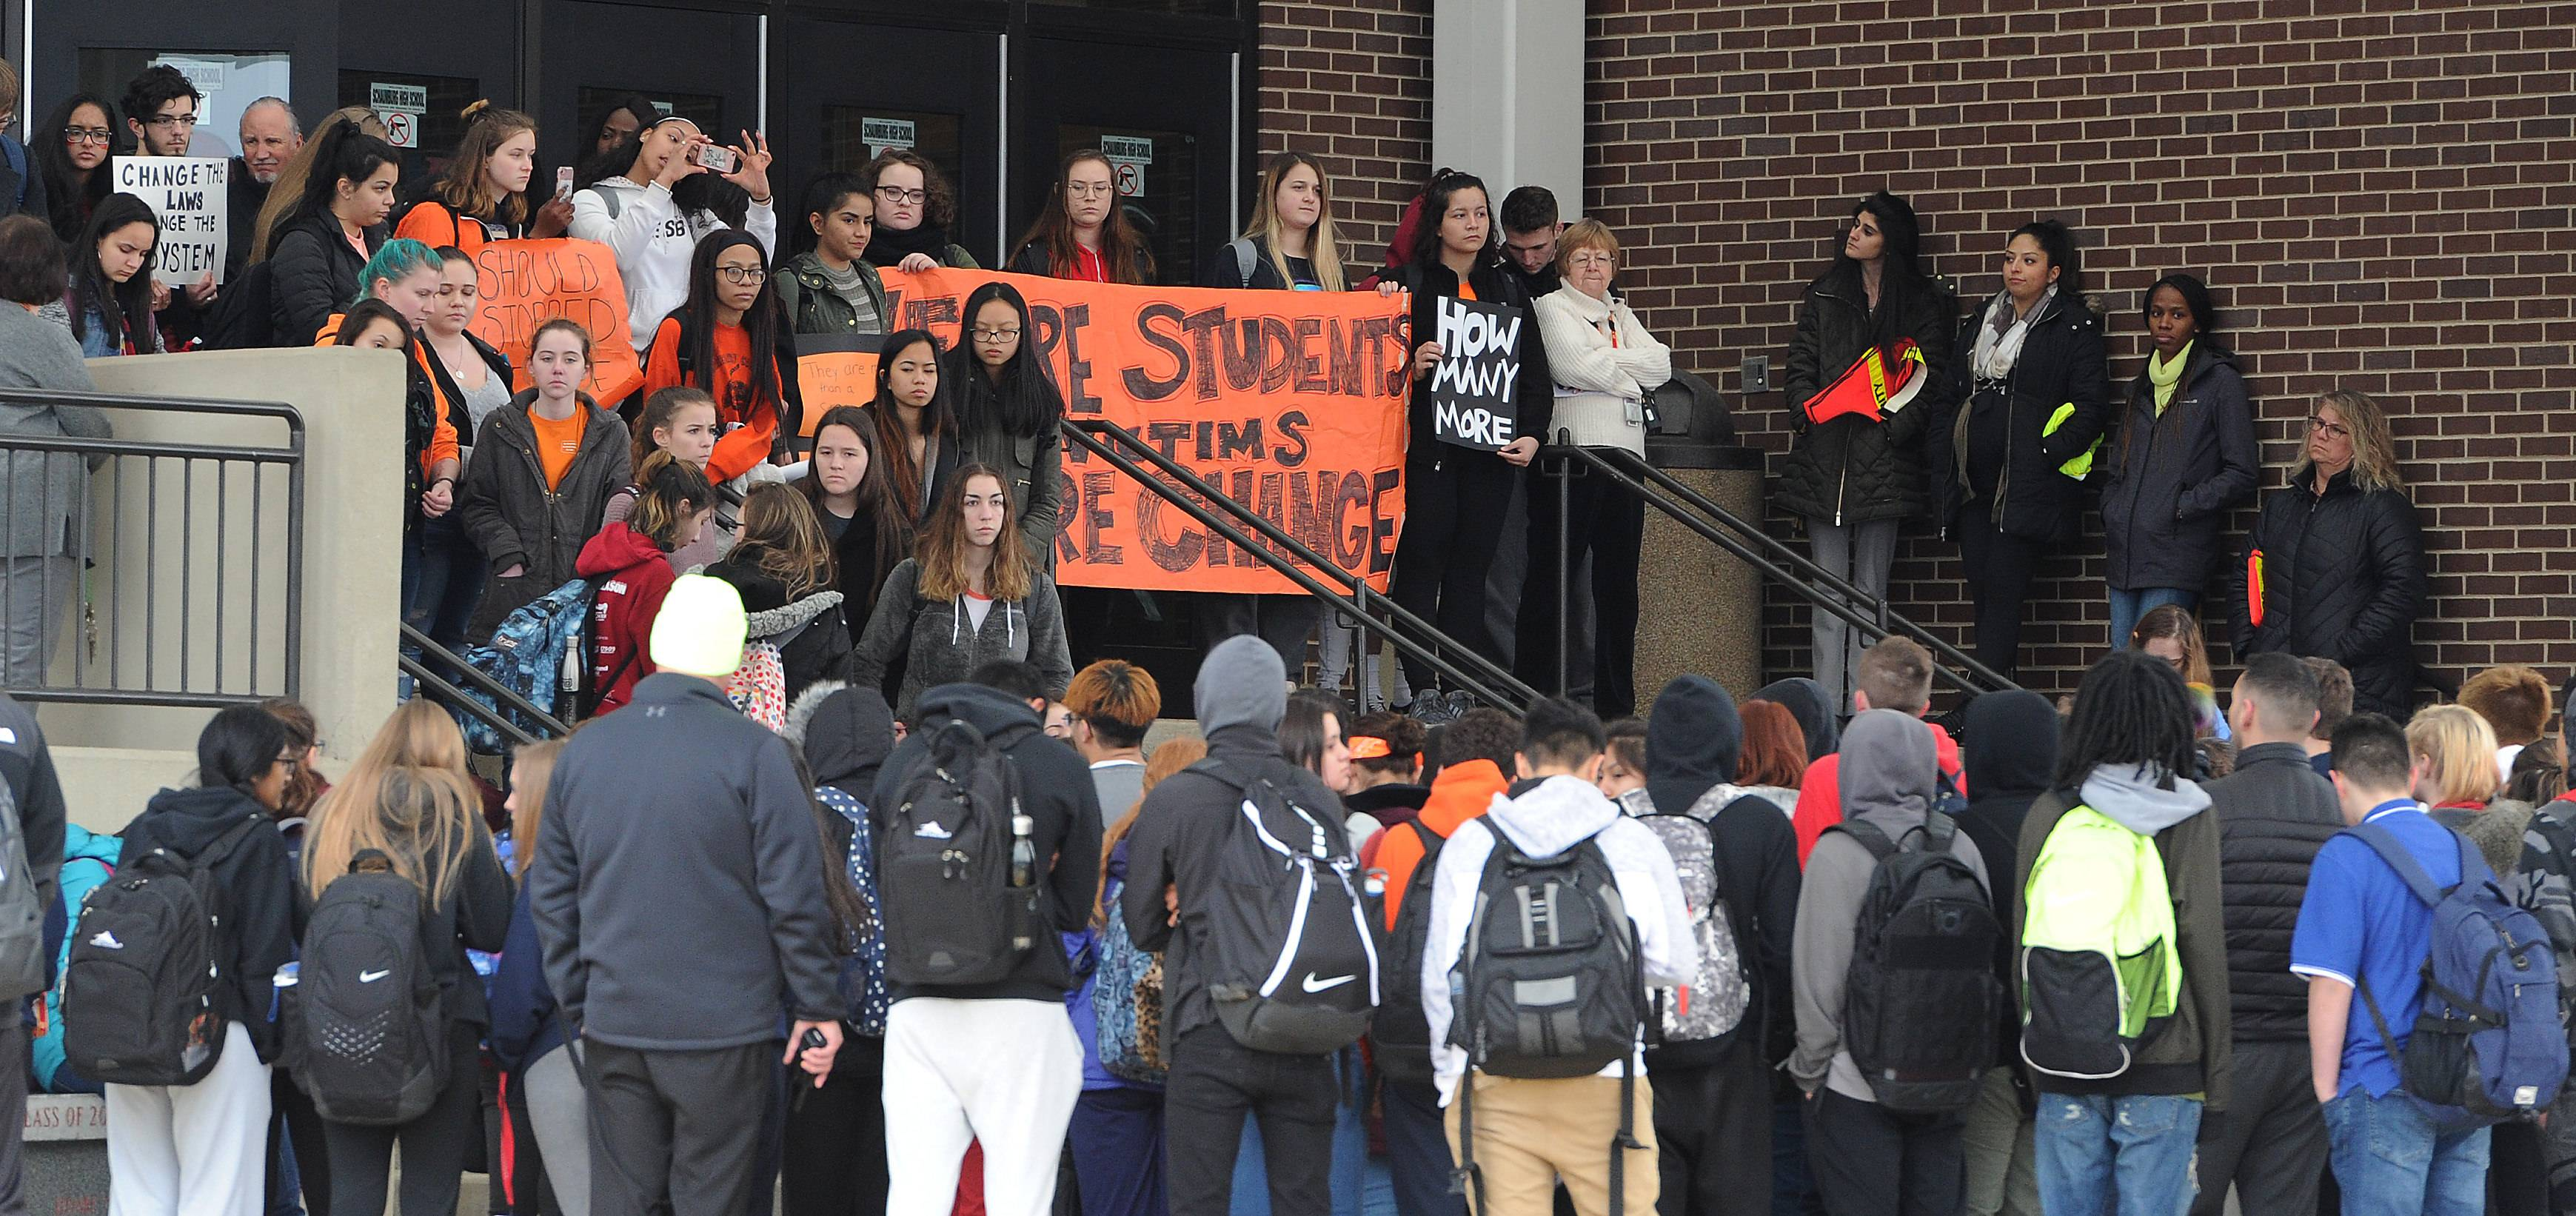 Hundreds of Schaumburg High School students walked out of school Wednesday to push for stricter gun control measures. Similar walkouts took place in other suburbs and across the country to make the one-week anniversary of the killing of 17 students and staff at a Florida high school.